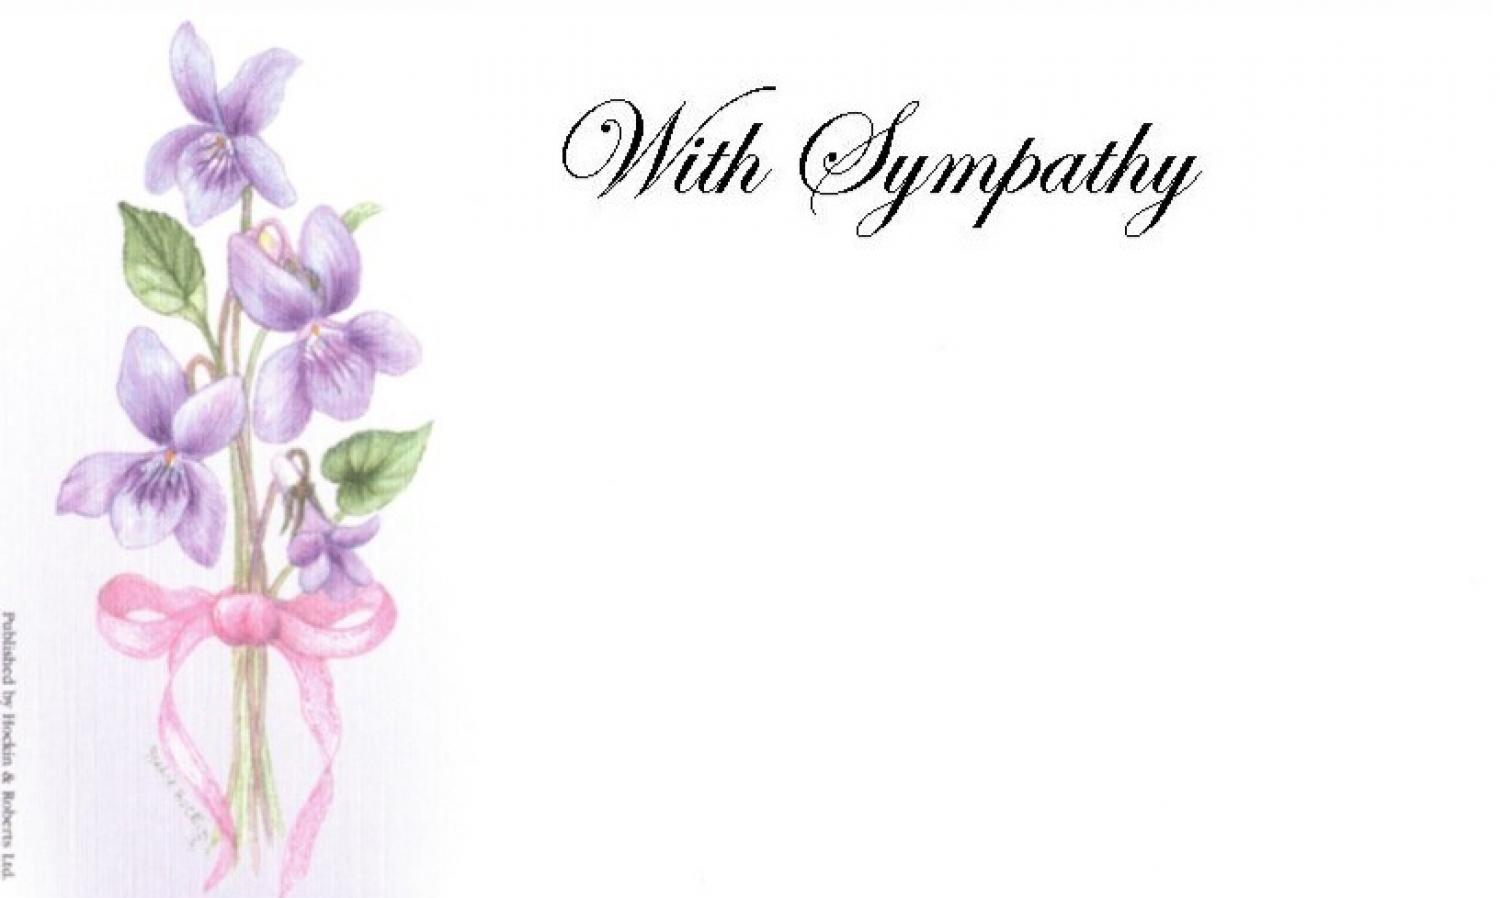 With Sympathy Card - Violets